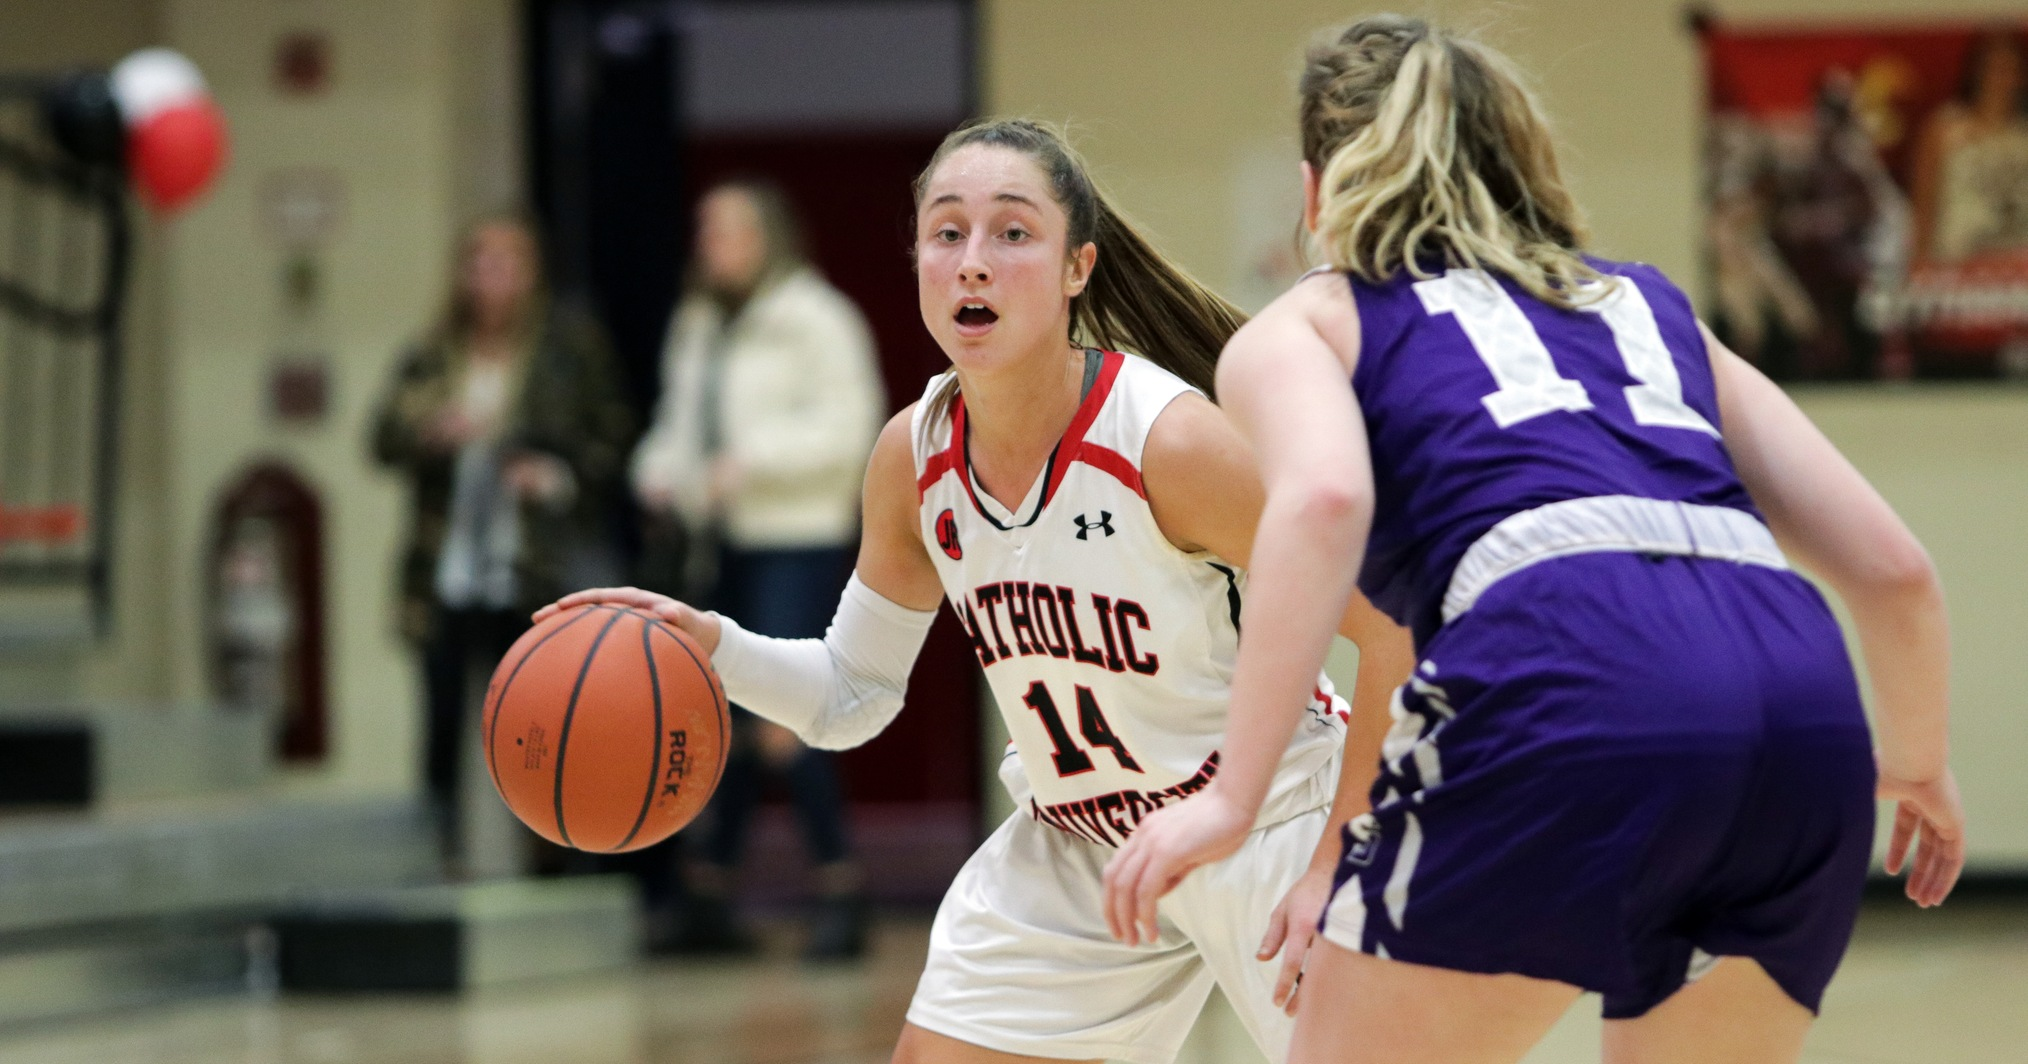 Cardinals' Comeback Falls Short in 60-58 Loss at Juniata